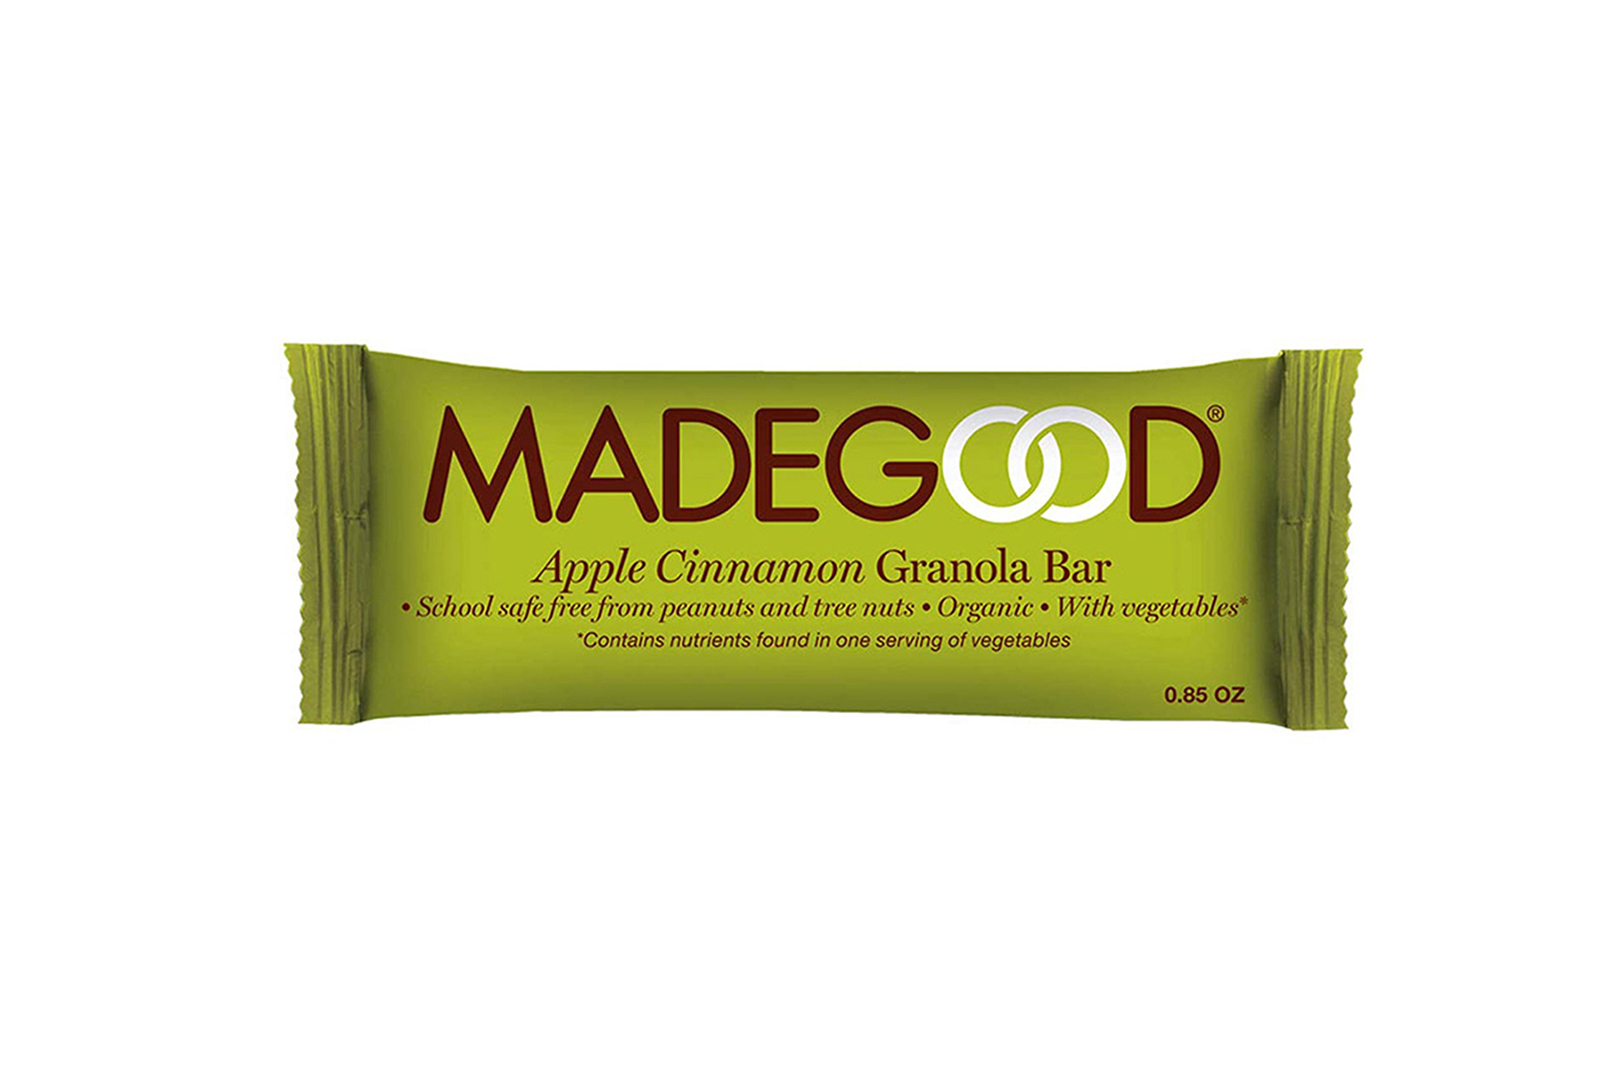 MadeGood Apple Cinnamon Granola Bar